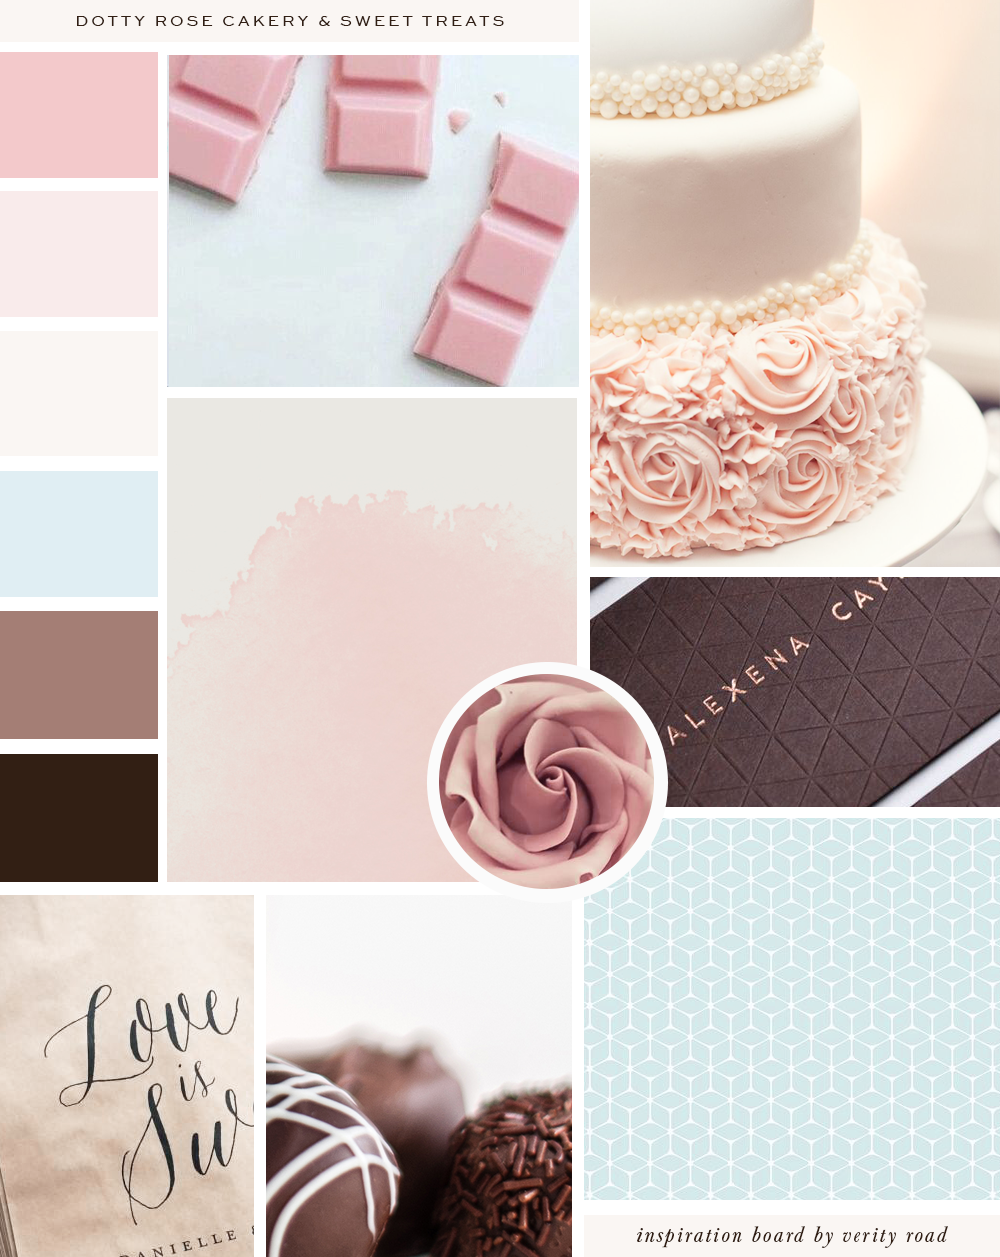 Mood board for dotty rose cakery and sweet treats, wedding professional, wedding business branding, wedding cake designer, luxury branding, feminine branding and web design for female entrepreneurs. Inspiration board of typography, script font, sans serif, serif, pastel color palette, blue, pink, floral inspiration, watercolor, geometric pattern, business owner, feminine business. See more for brand board, social media branding and web design.